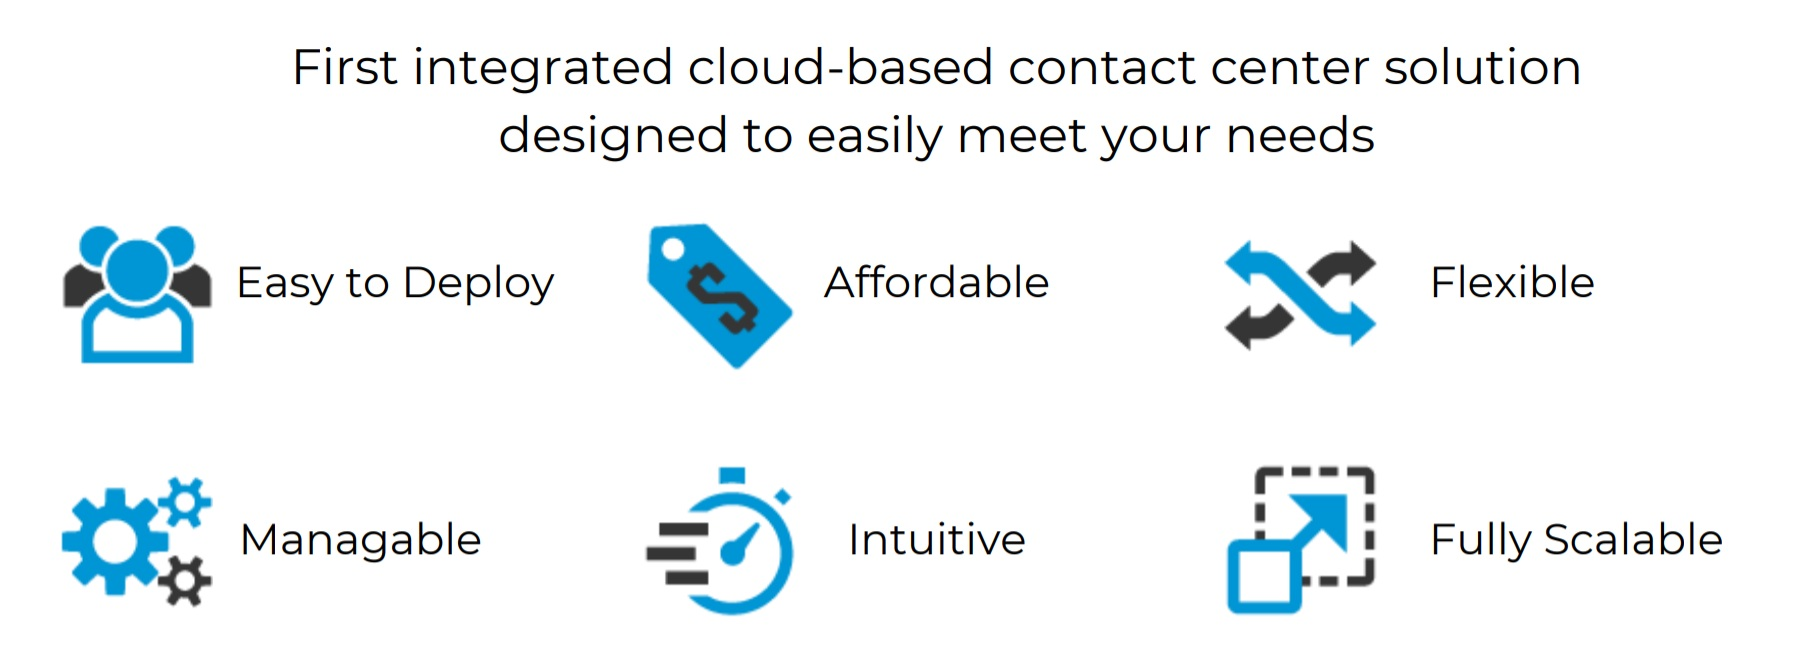 CoreInteract by Blue Panda is easy to deploy, affordable, flexible, managable, intuitive, and scalable.